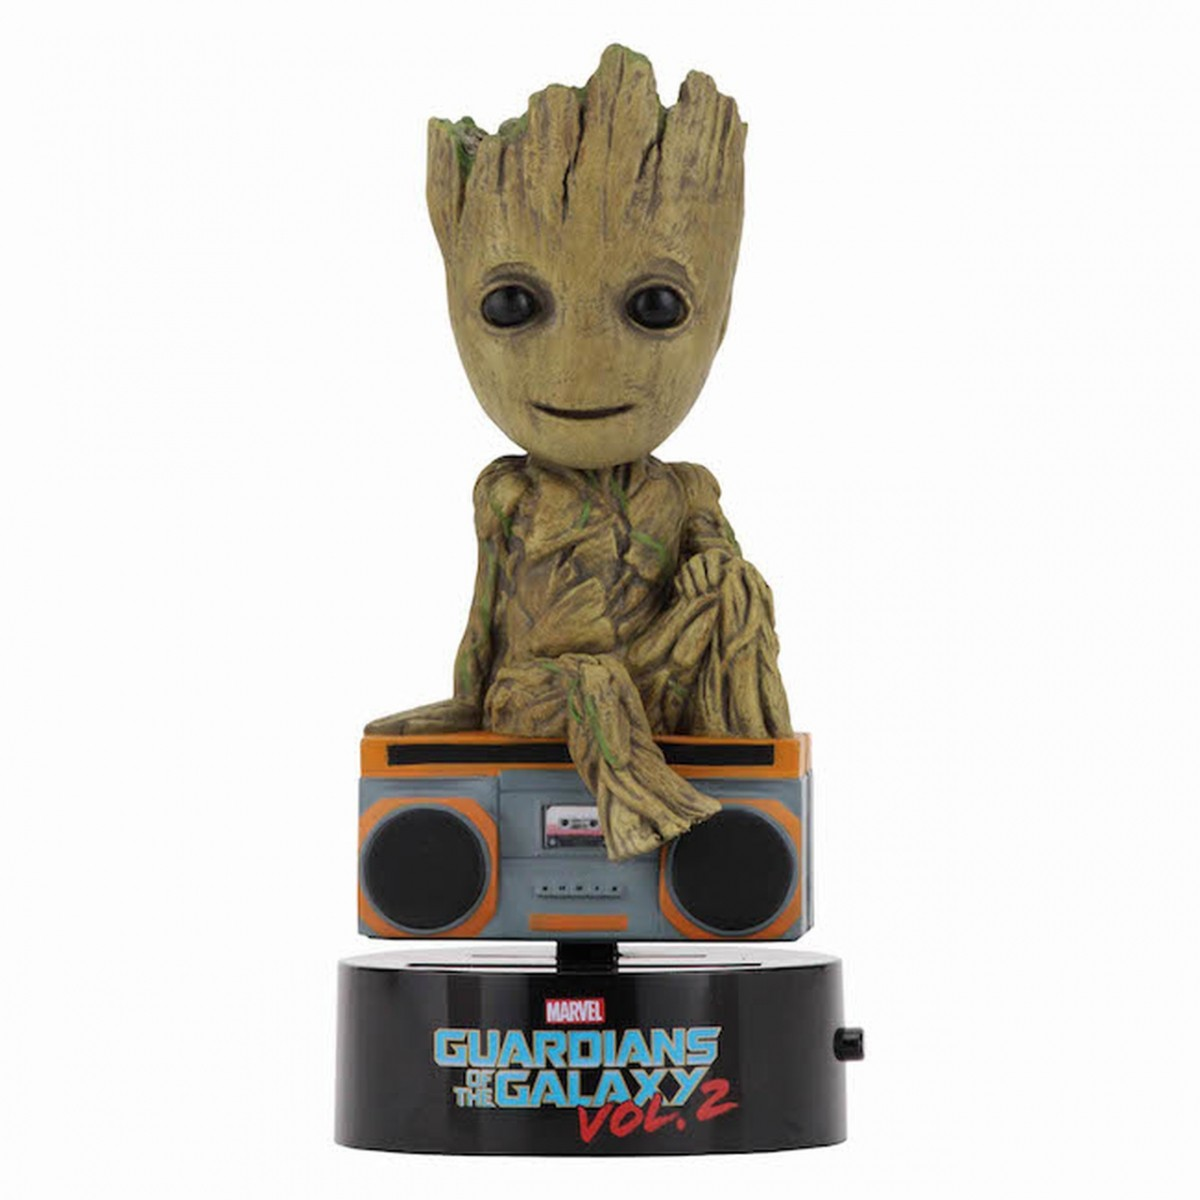 Estátua Groot: Guardiões da Galáxia Vol. 2 Body Knocker - Neca